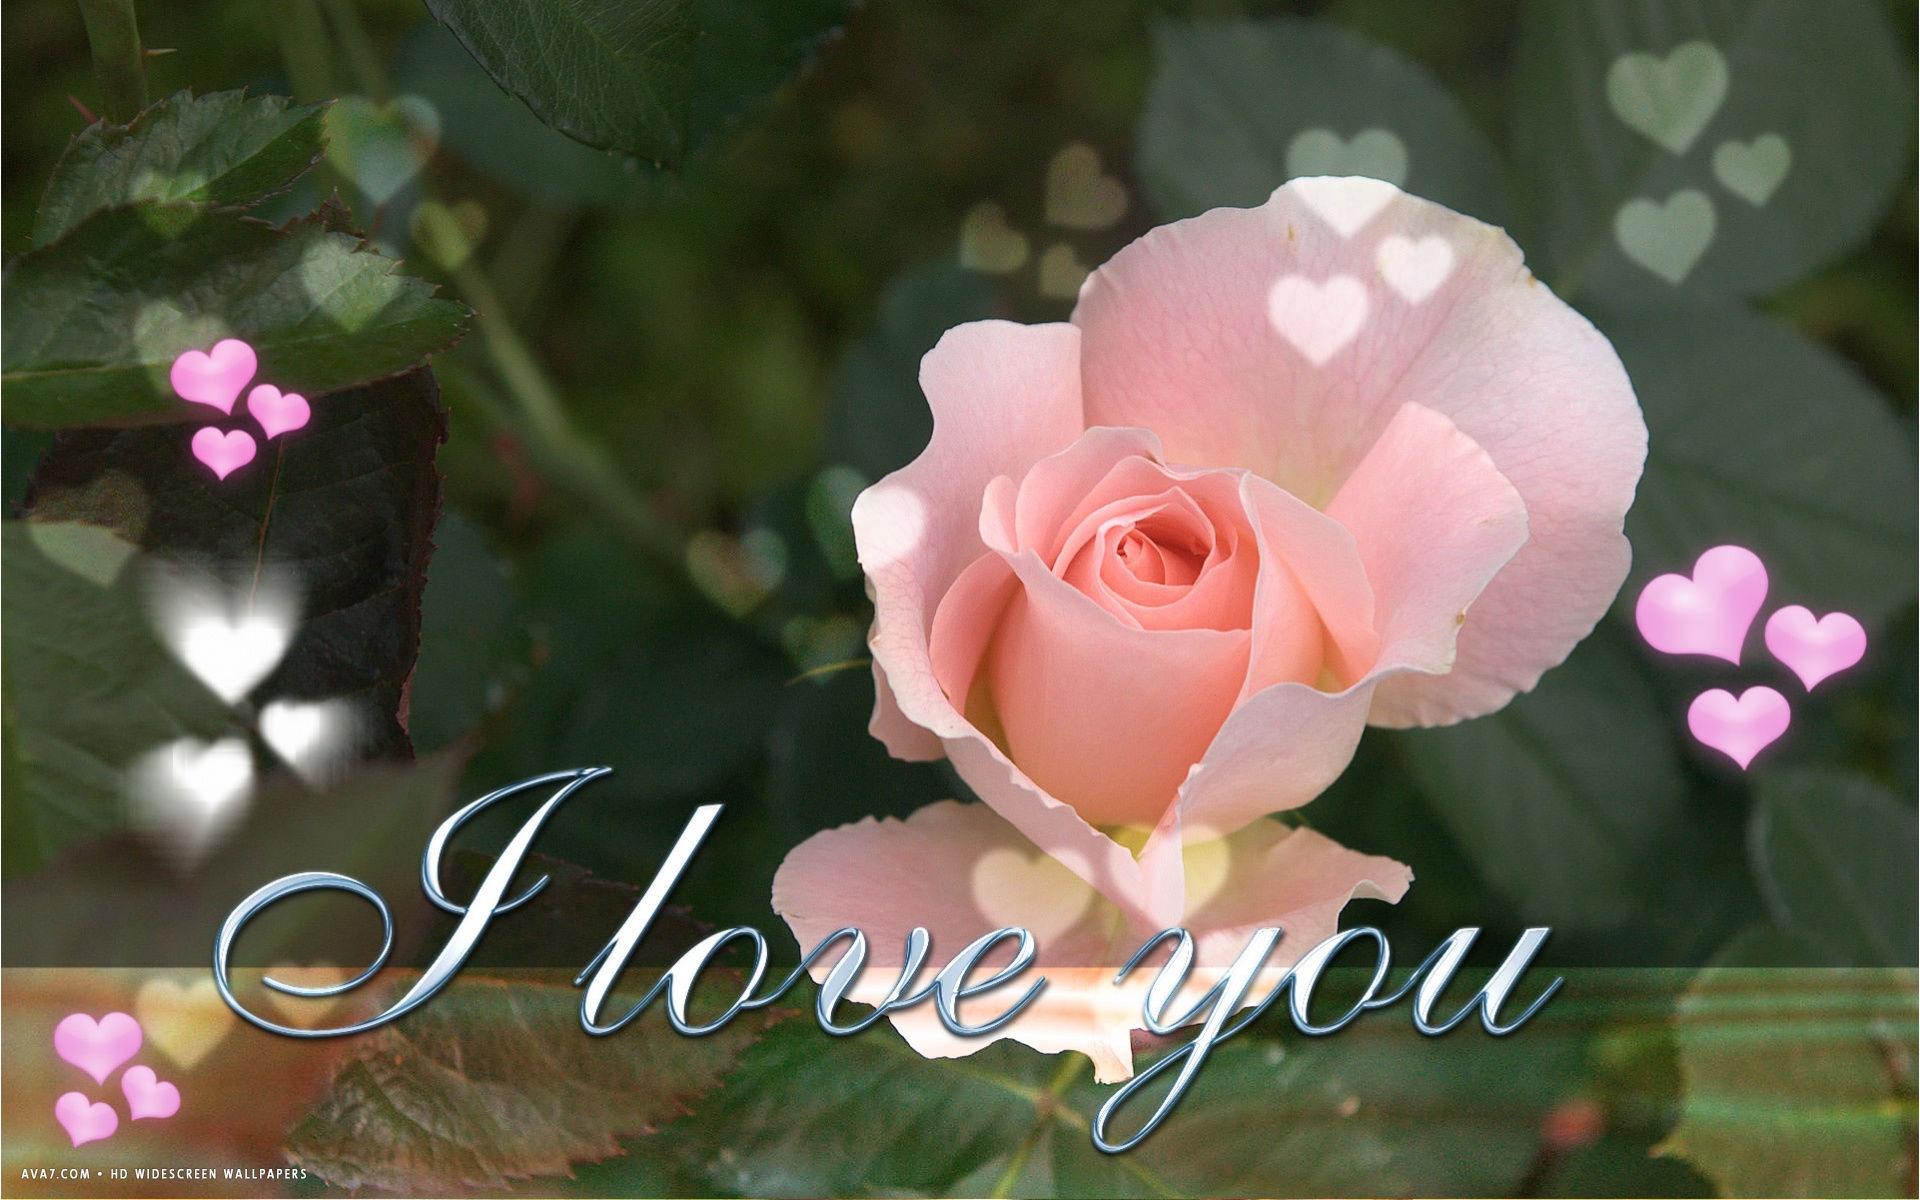 I Love You Text Pink Rose Flower Hearts Hd Widescreen Wallpaper Romantic Backgrounds